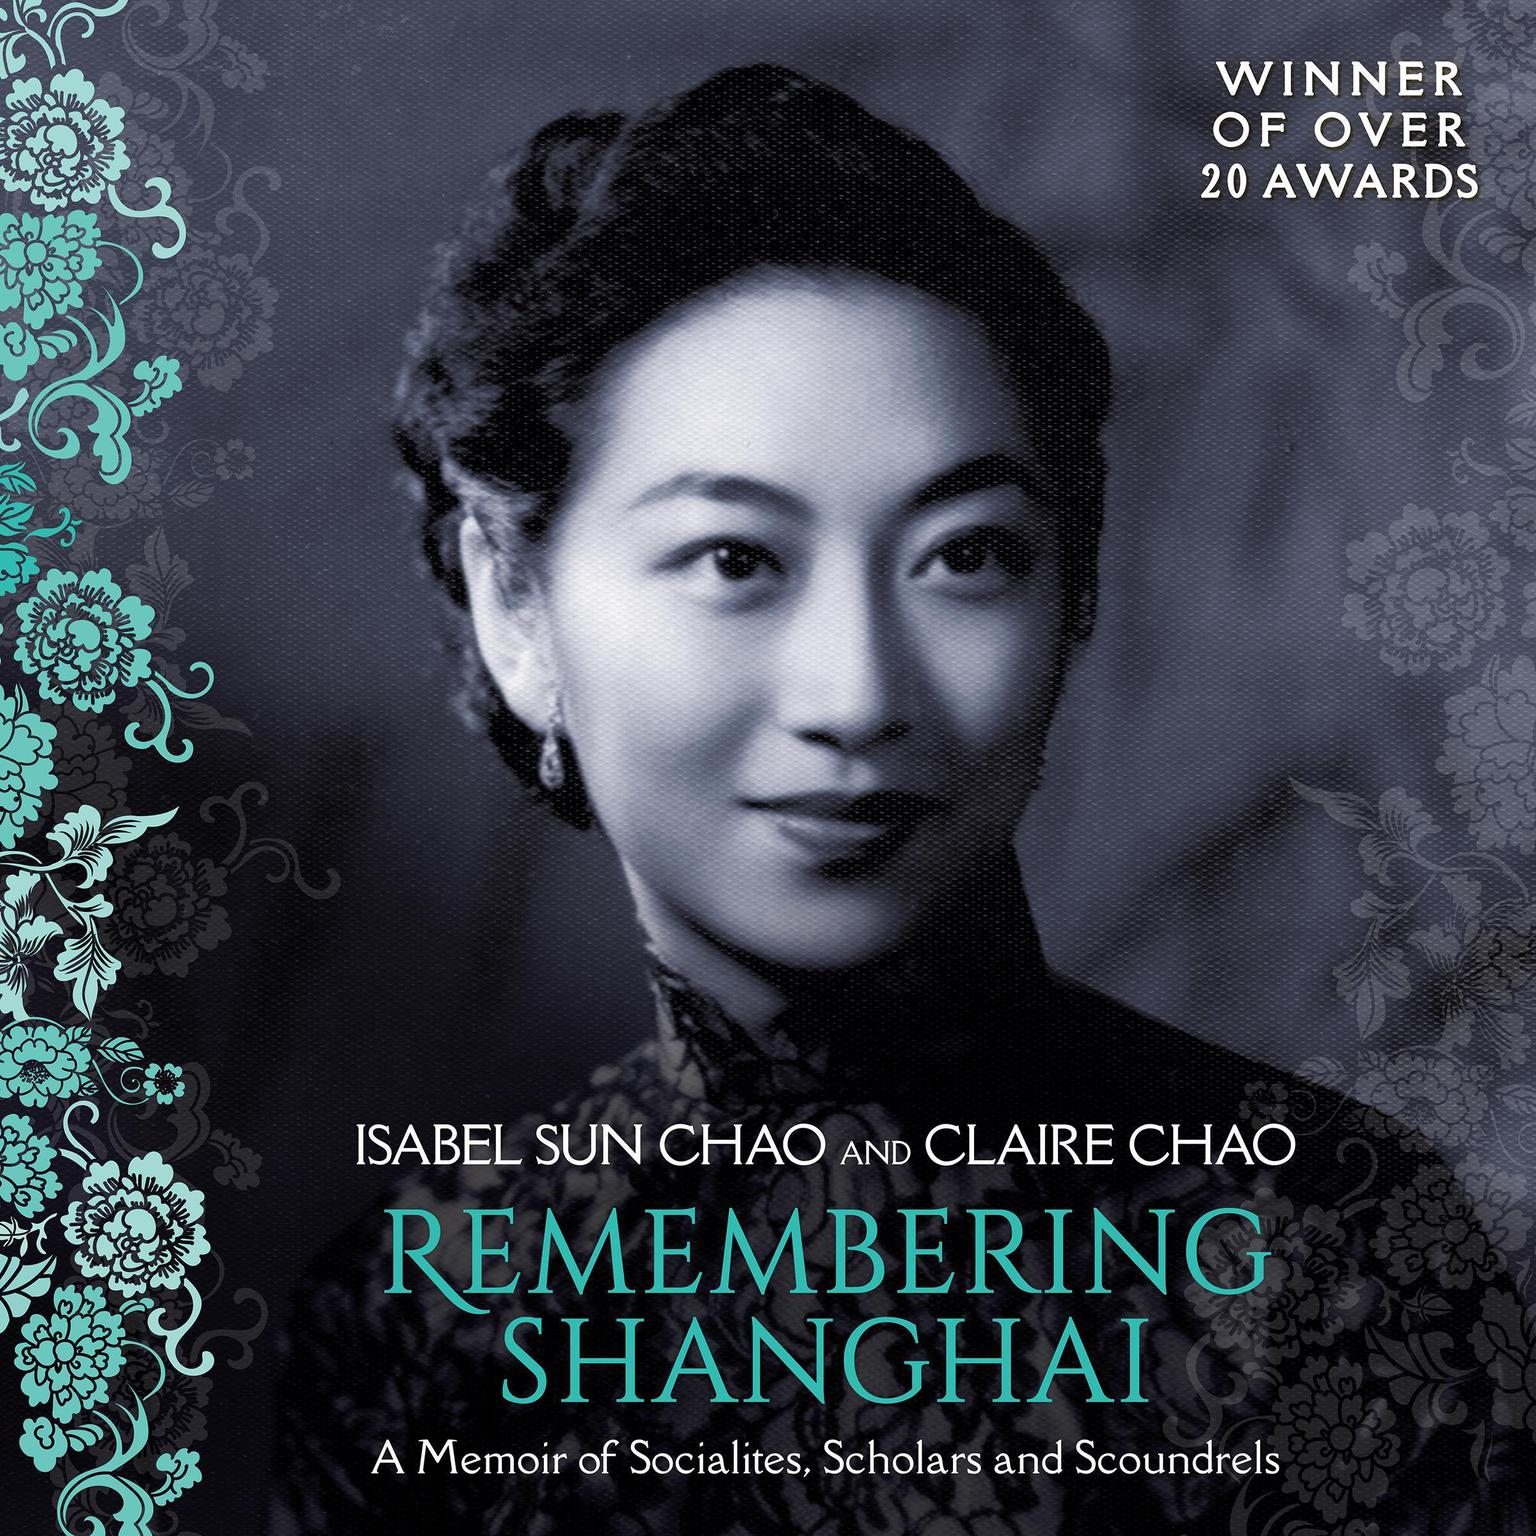 Remembering Shanghai: A Memoir of Socialites, Scholars and Scoundrels Audiobook, by Claire Chao